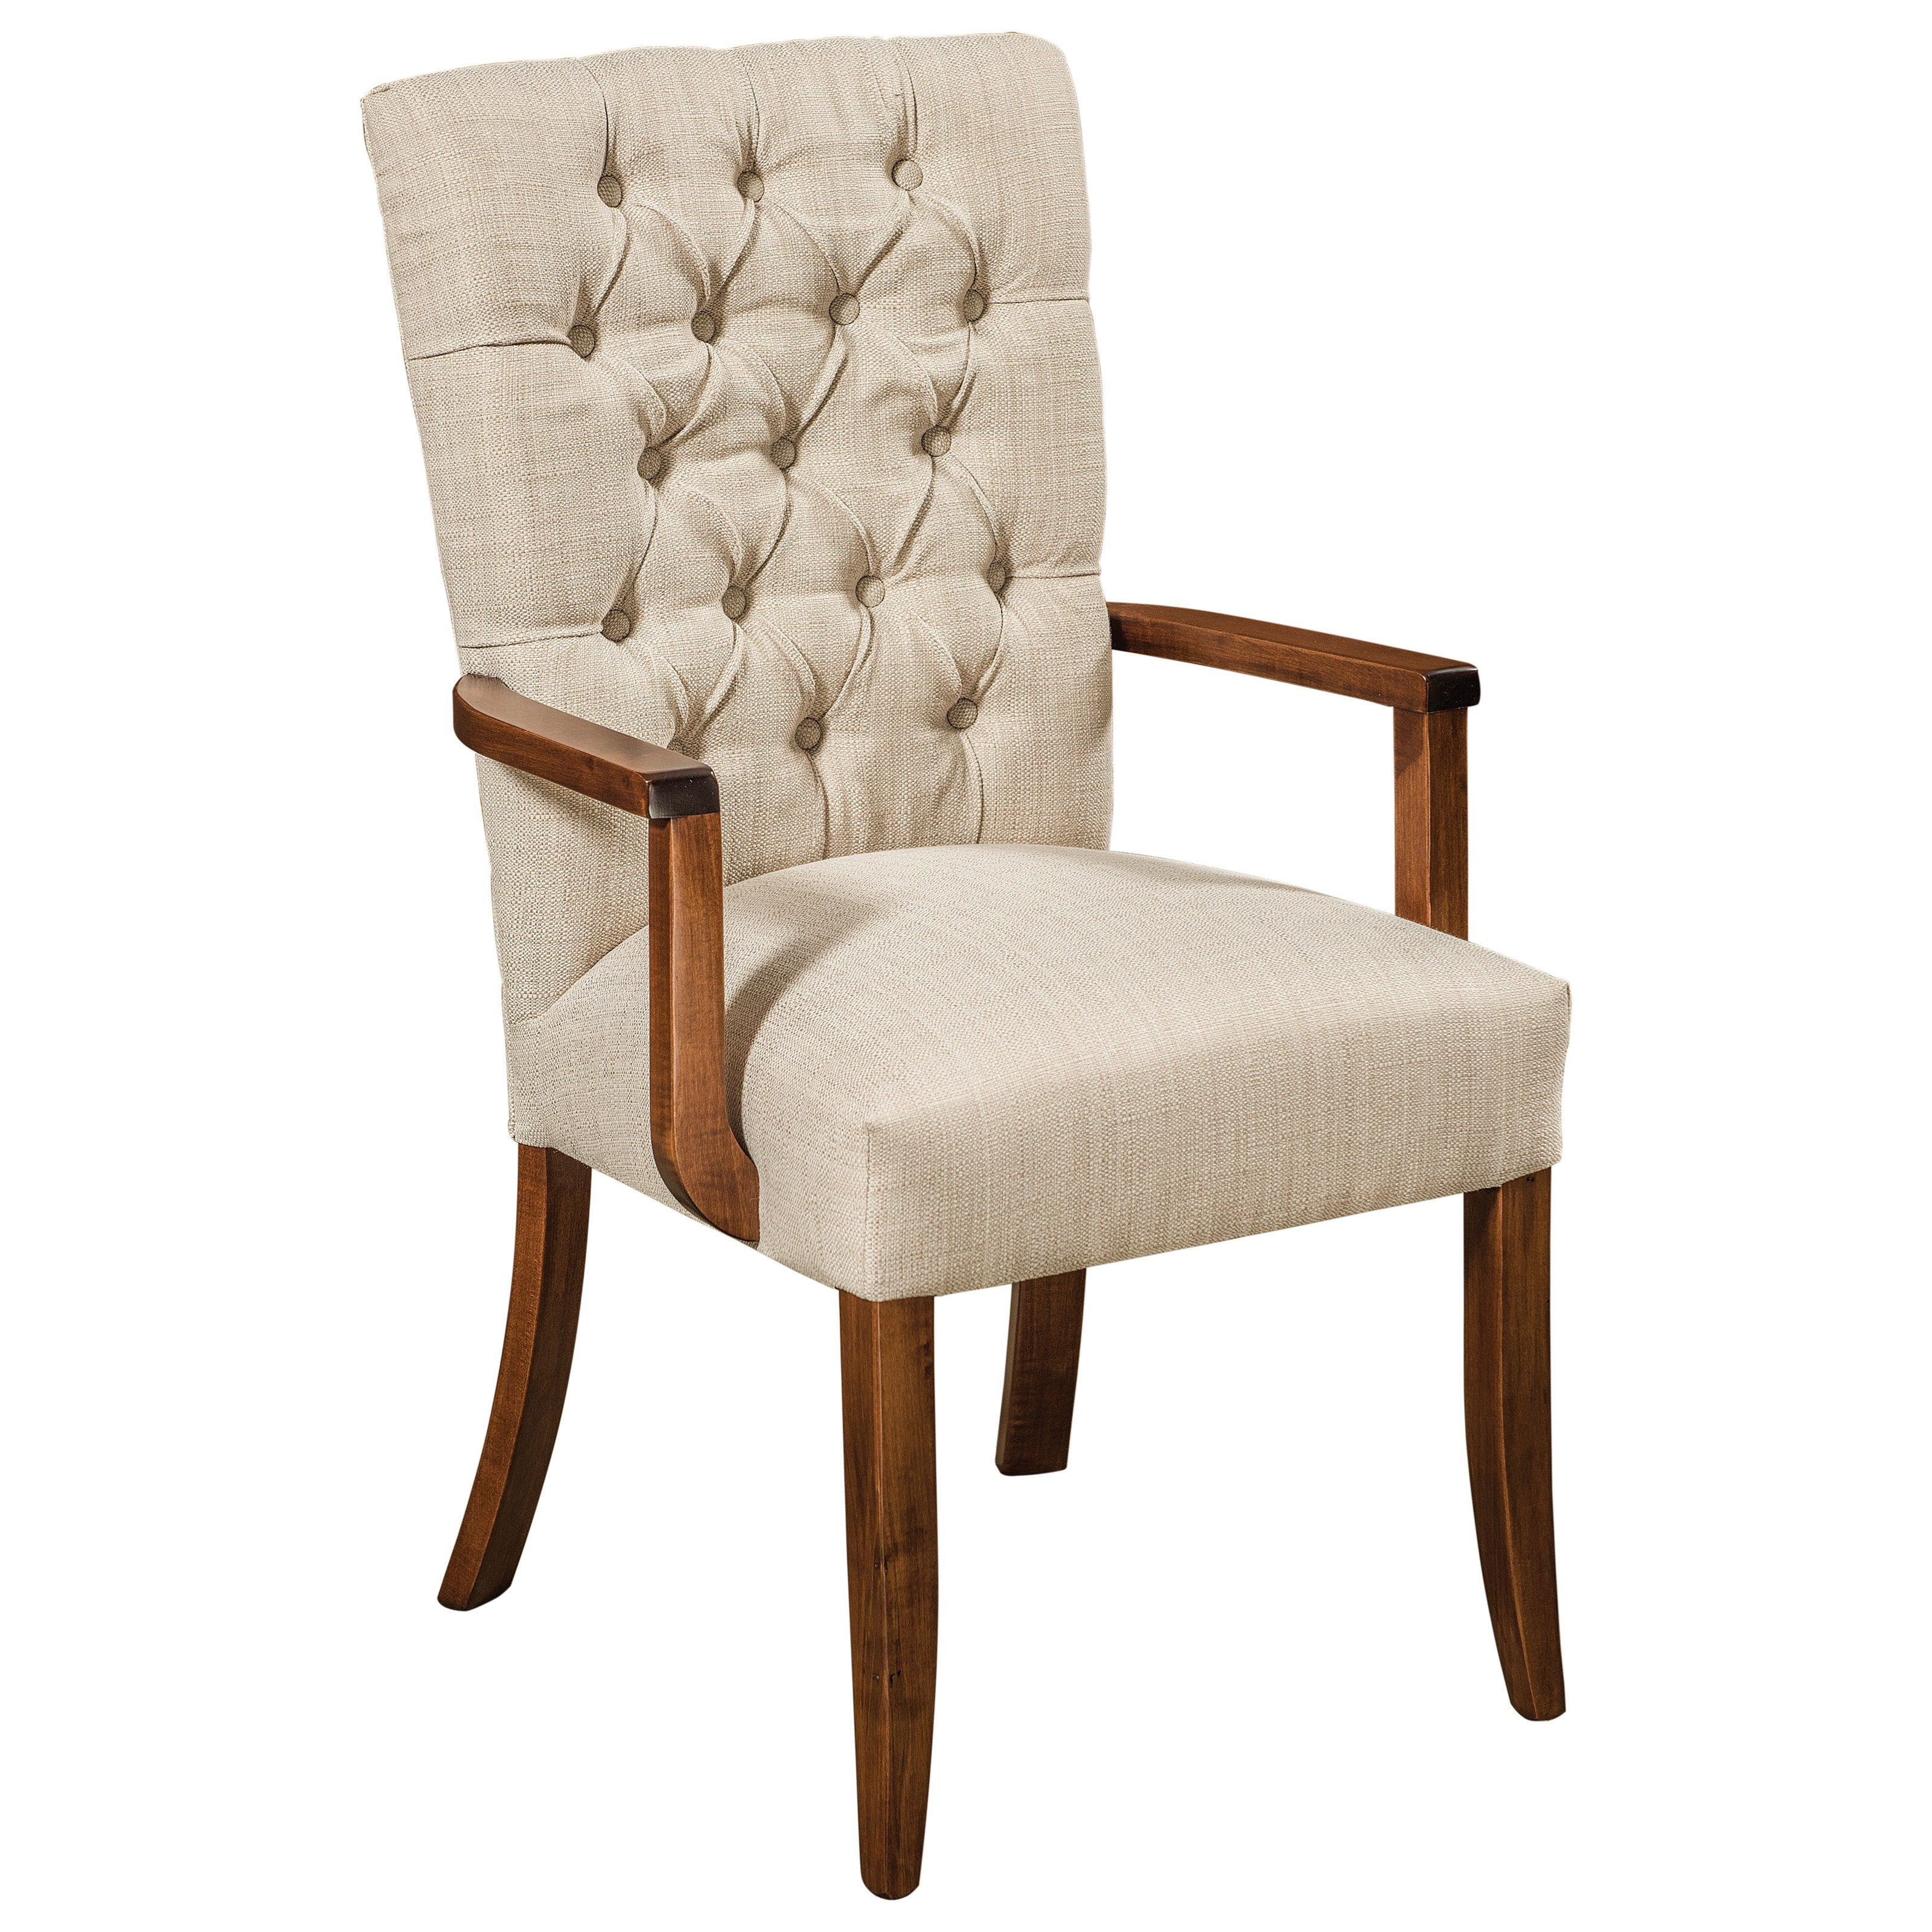 Alana Customizable Solid Wood Arm Chair by F&N Woodworking at Saugerties Furniture Mart